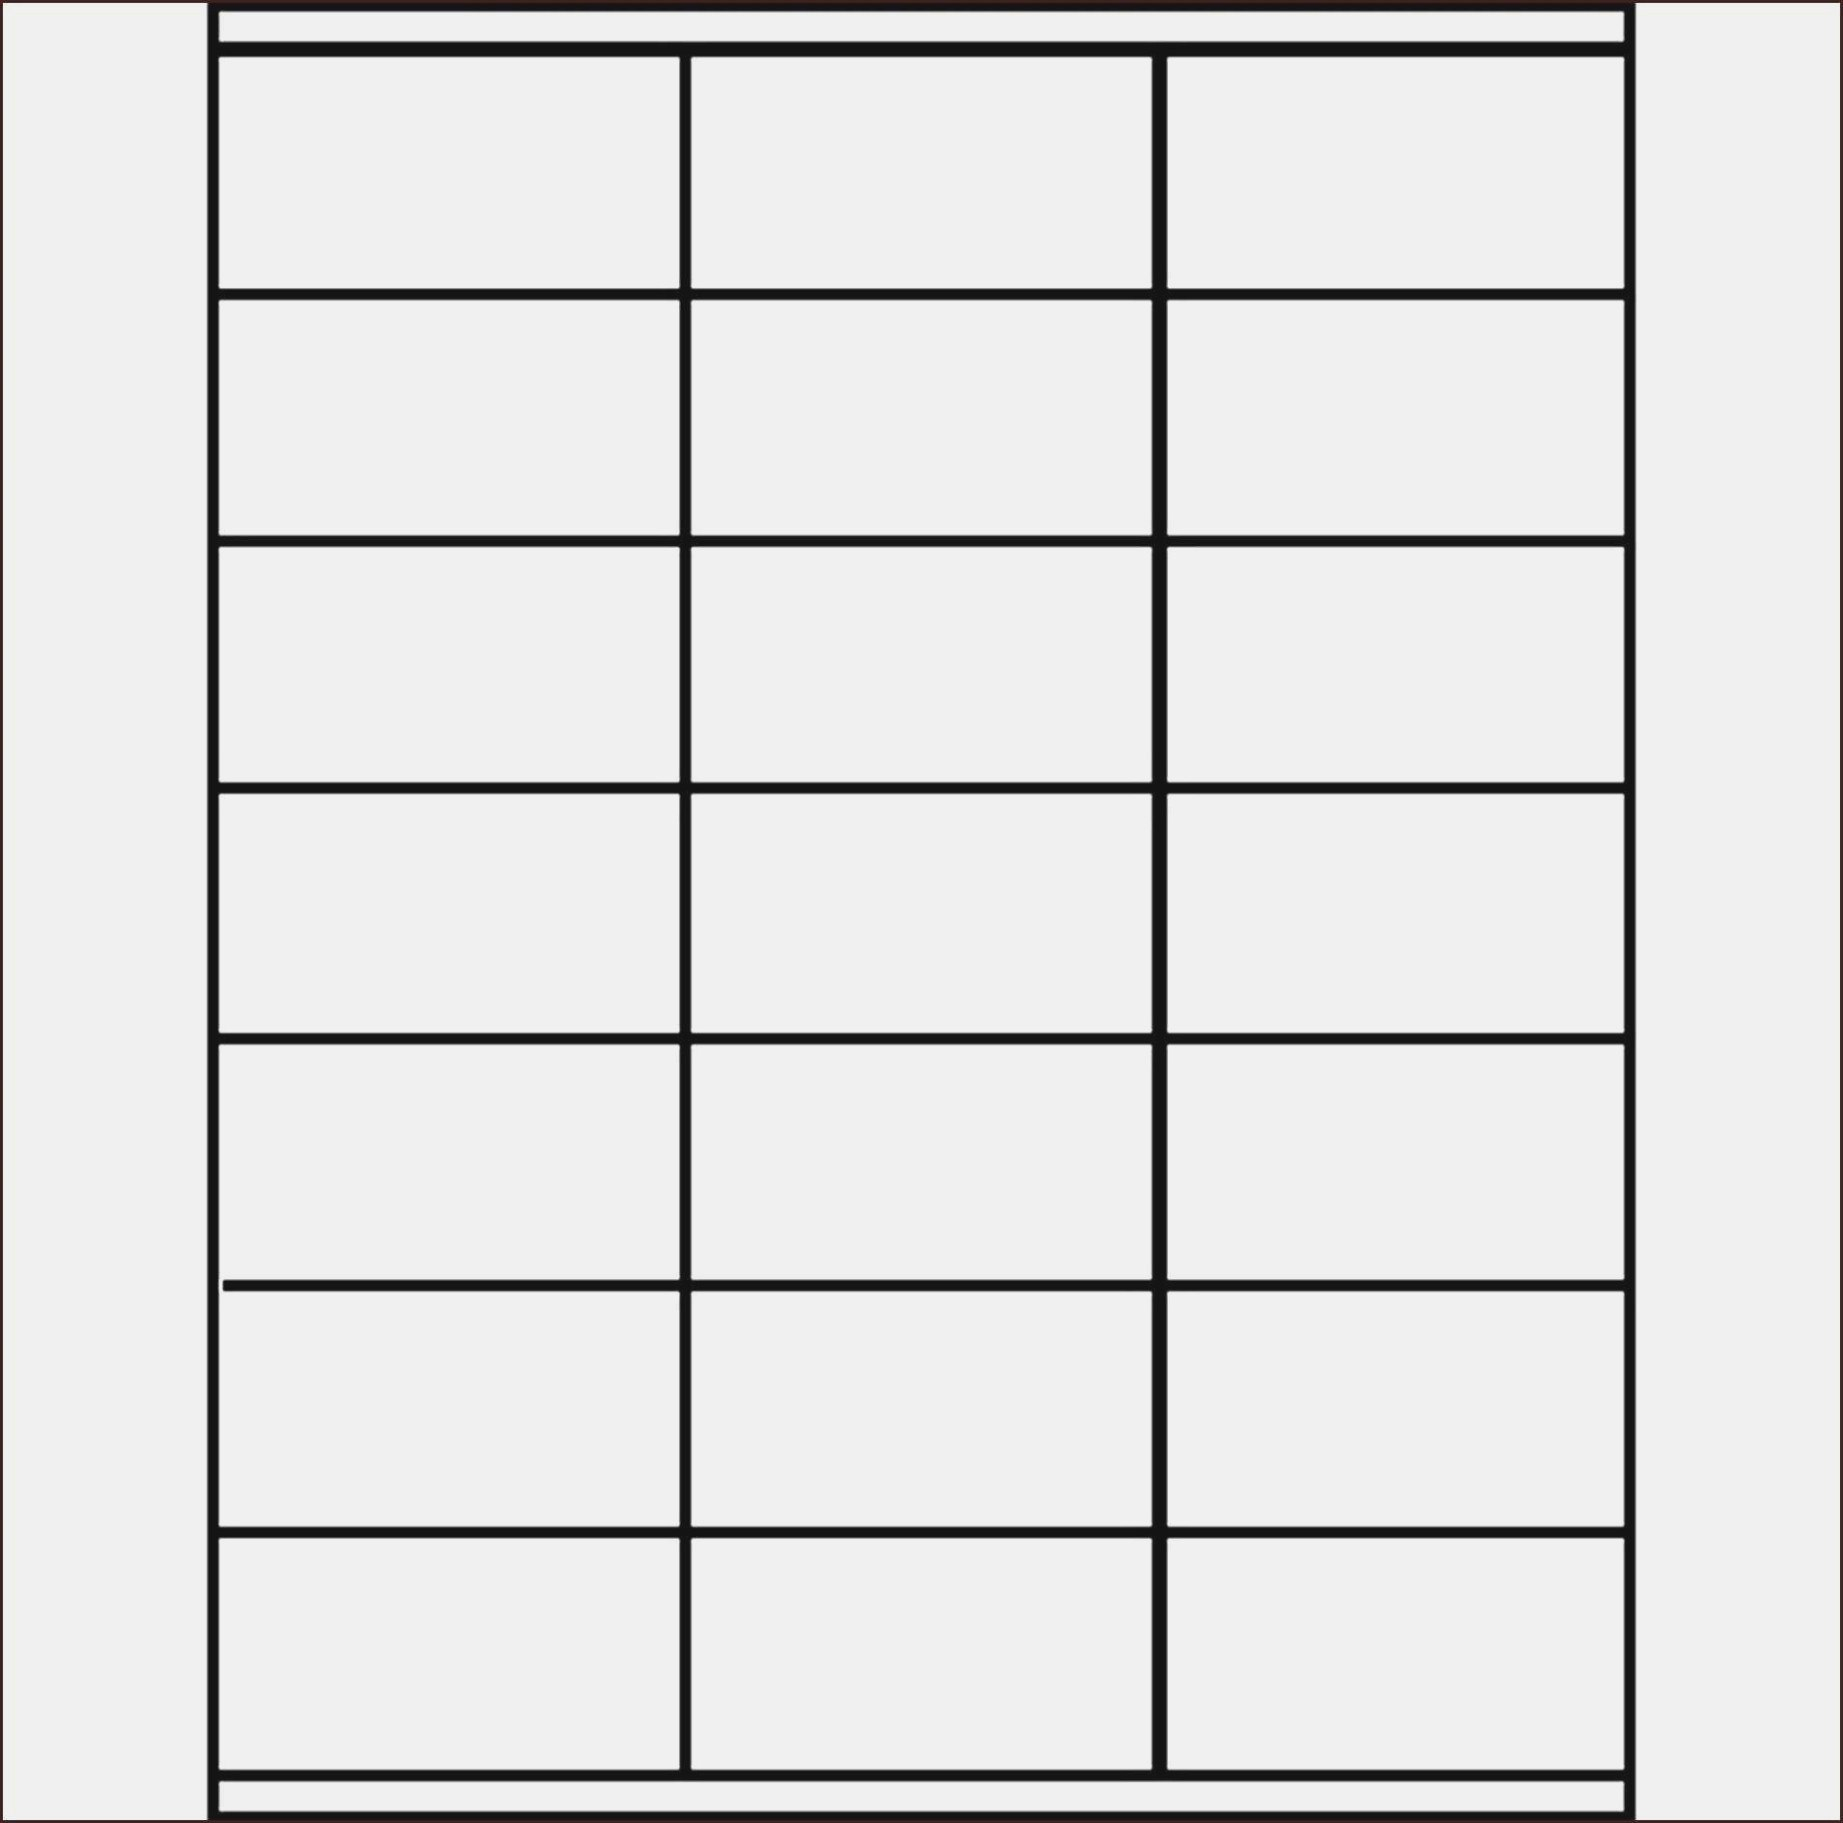 Label Printing Template  Per Sheet With  Labels Per Sheet Pertaining To Label Template 21 Per Sheet